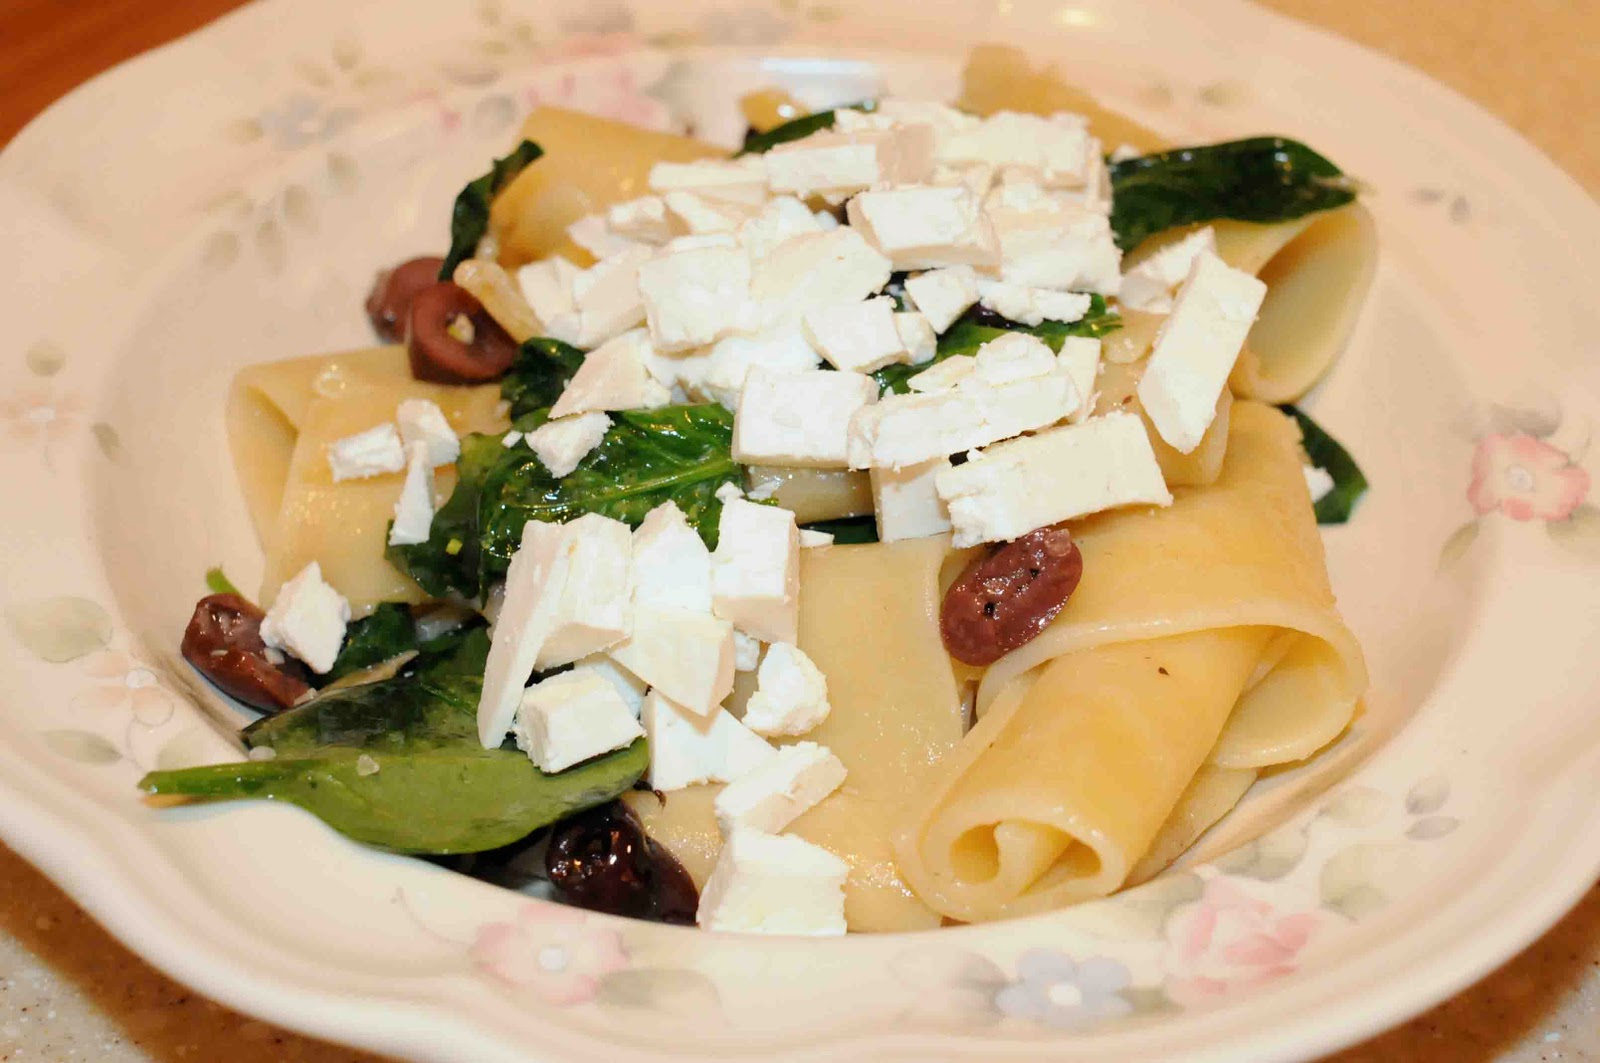 ... Stuff a Chicken: Recipe: Pasta with Spinach, Olives and Ricotta Salata